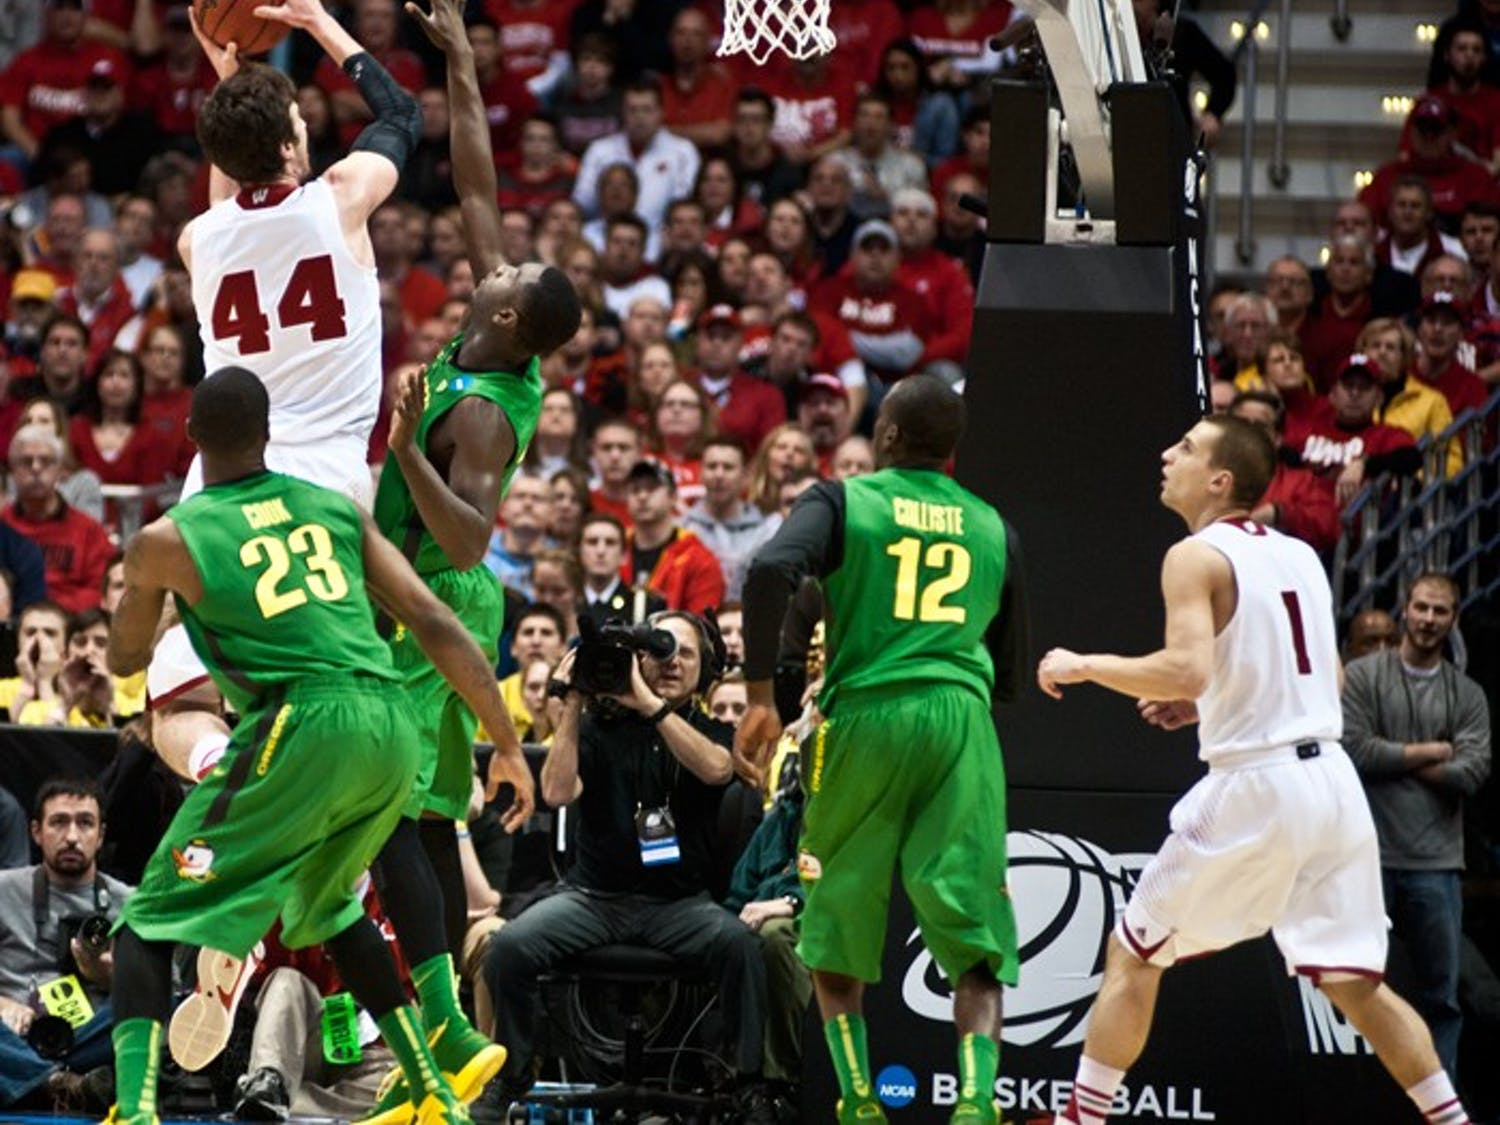 Wisconsin Badgers defeated Oregon Fighting Ducks Saturday March 22 with final score 85-77.